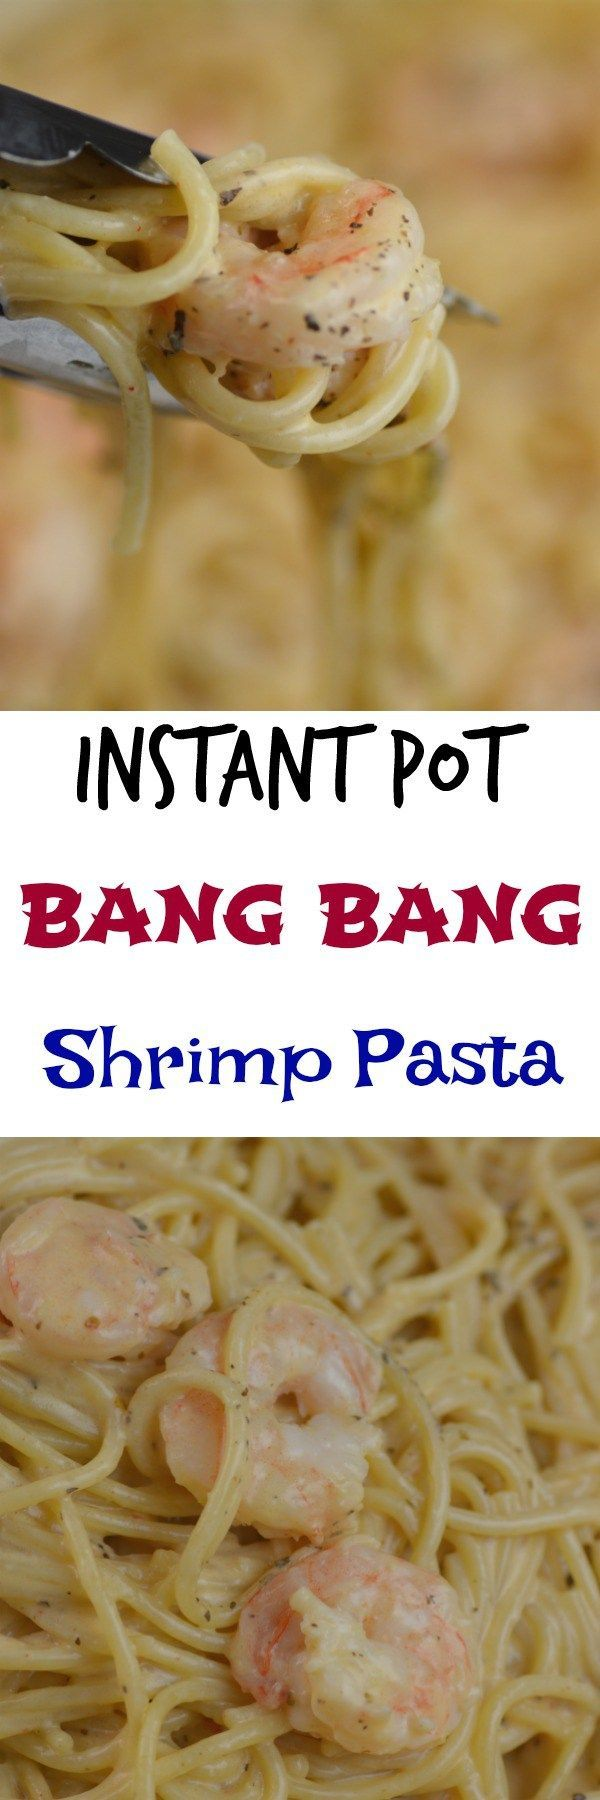 Share with friends66SharesInstant Pot Bang Bang Shrimp Pasta I use my instant pot about 3 times per week and I am always trying to think of new recipes to bring to everyone. Tonight my husband really wanted a shrimp dish. I found this amazing recipe over at Incredible Recipes for Bang Bang Shrimp. So I …